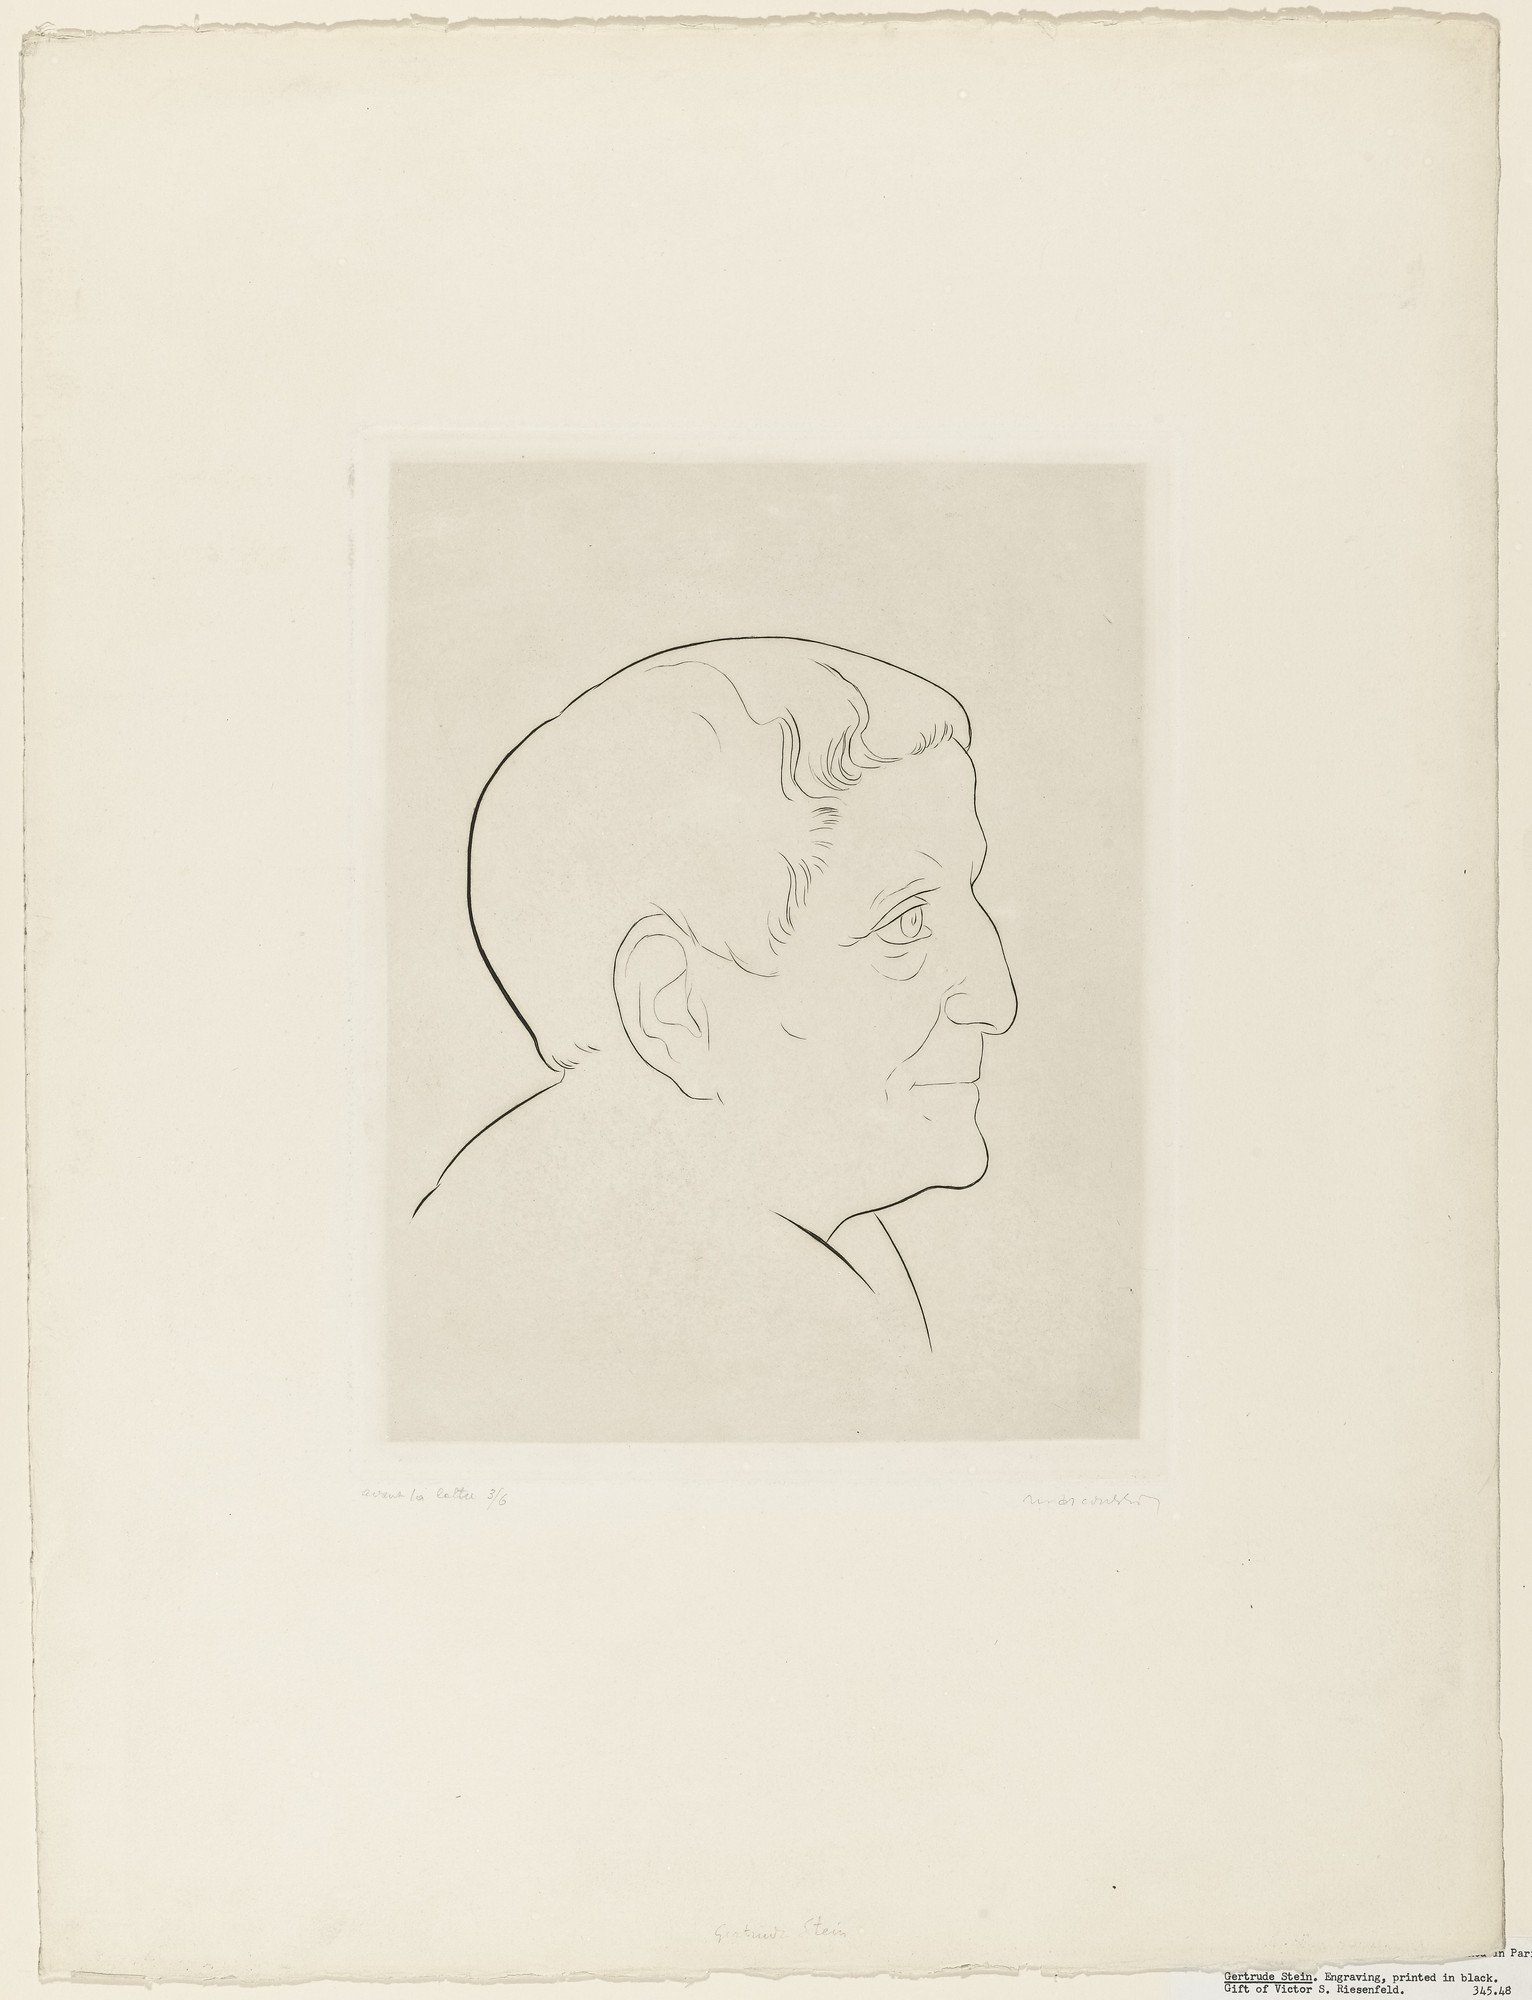 Louis Marcoussis. Gertrude Stein. 1898